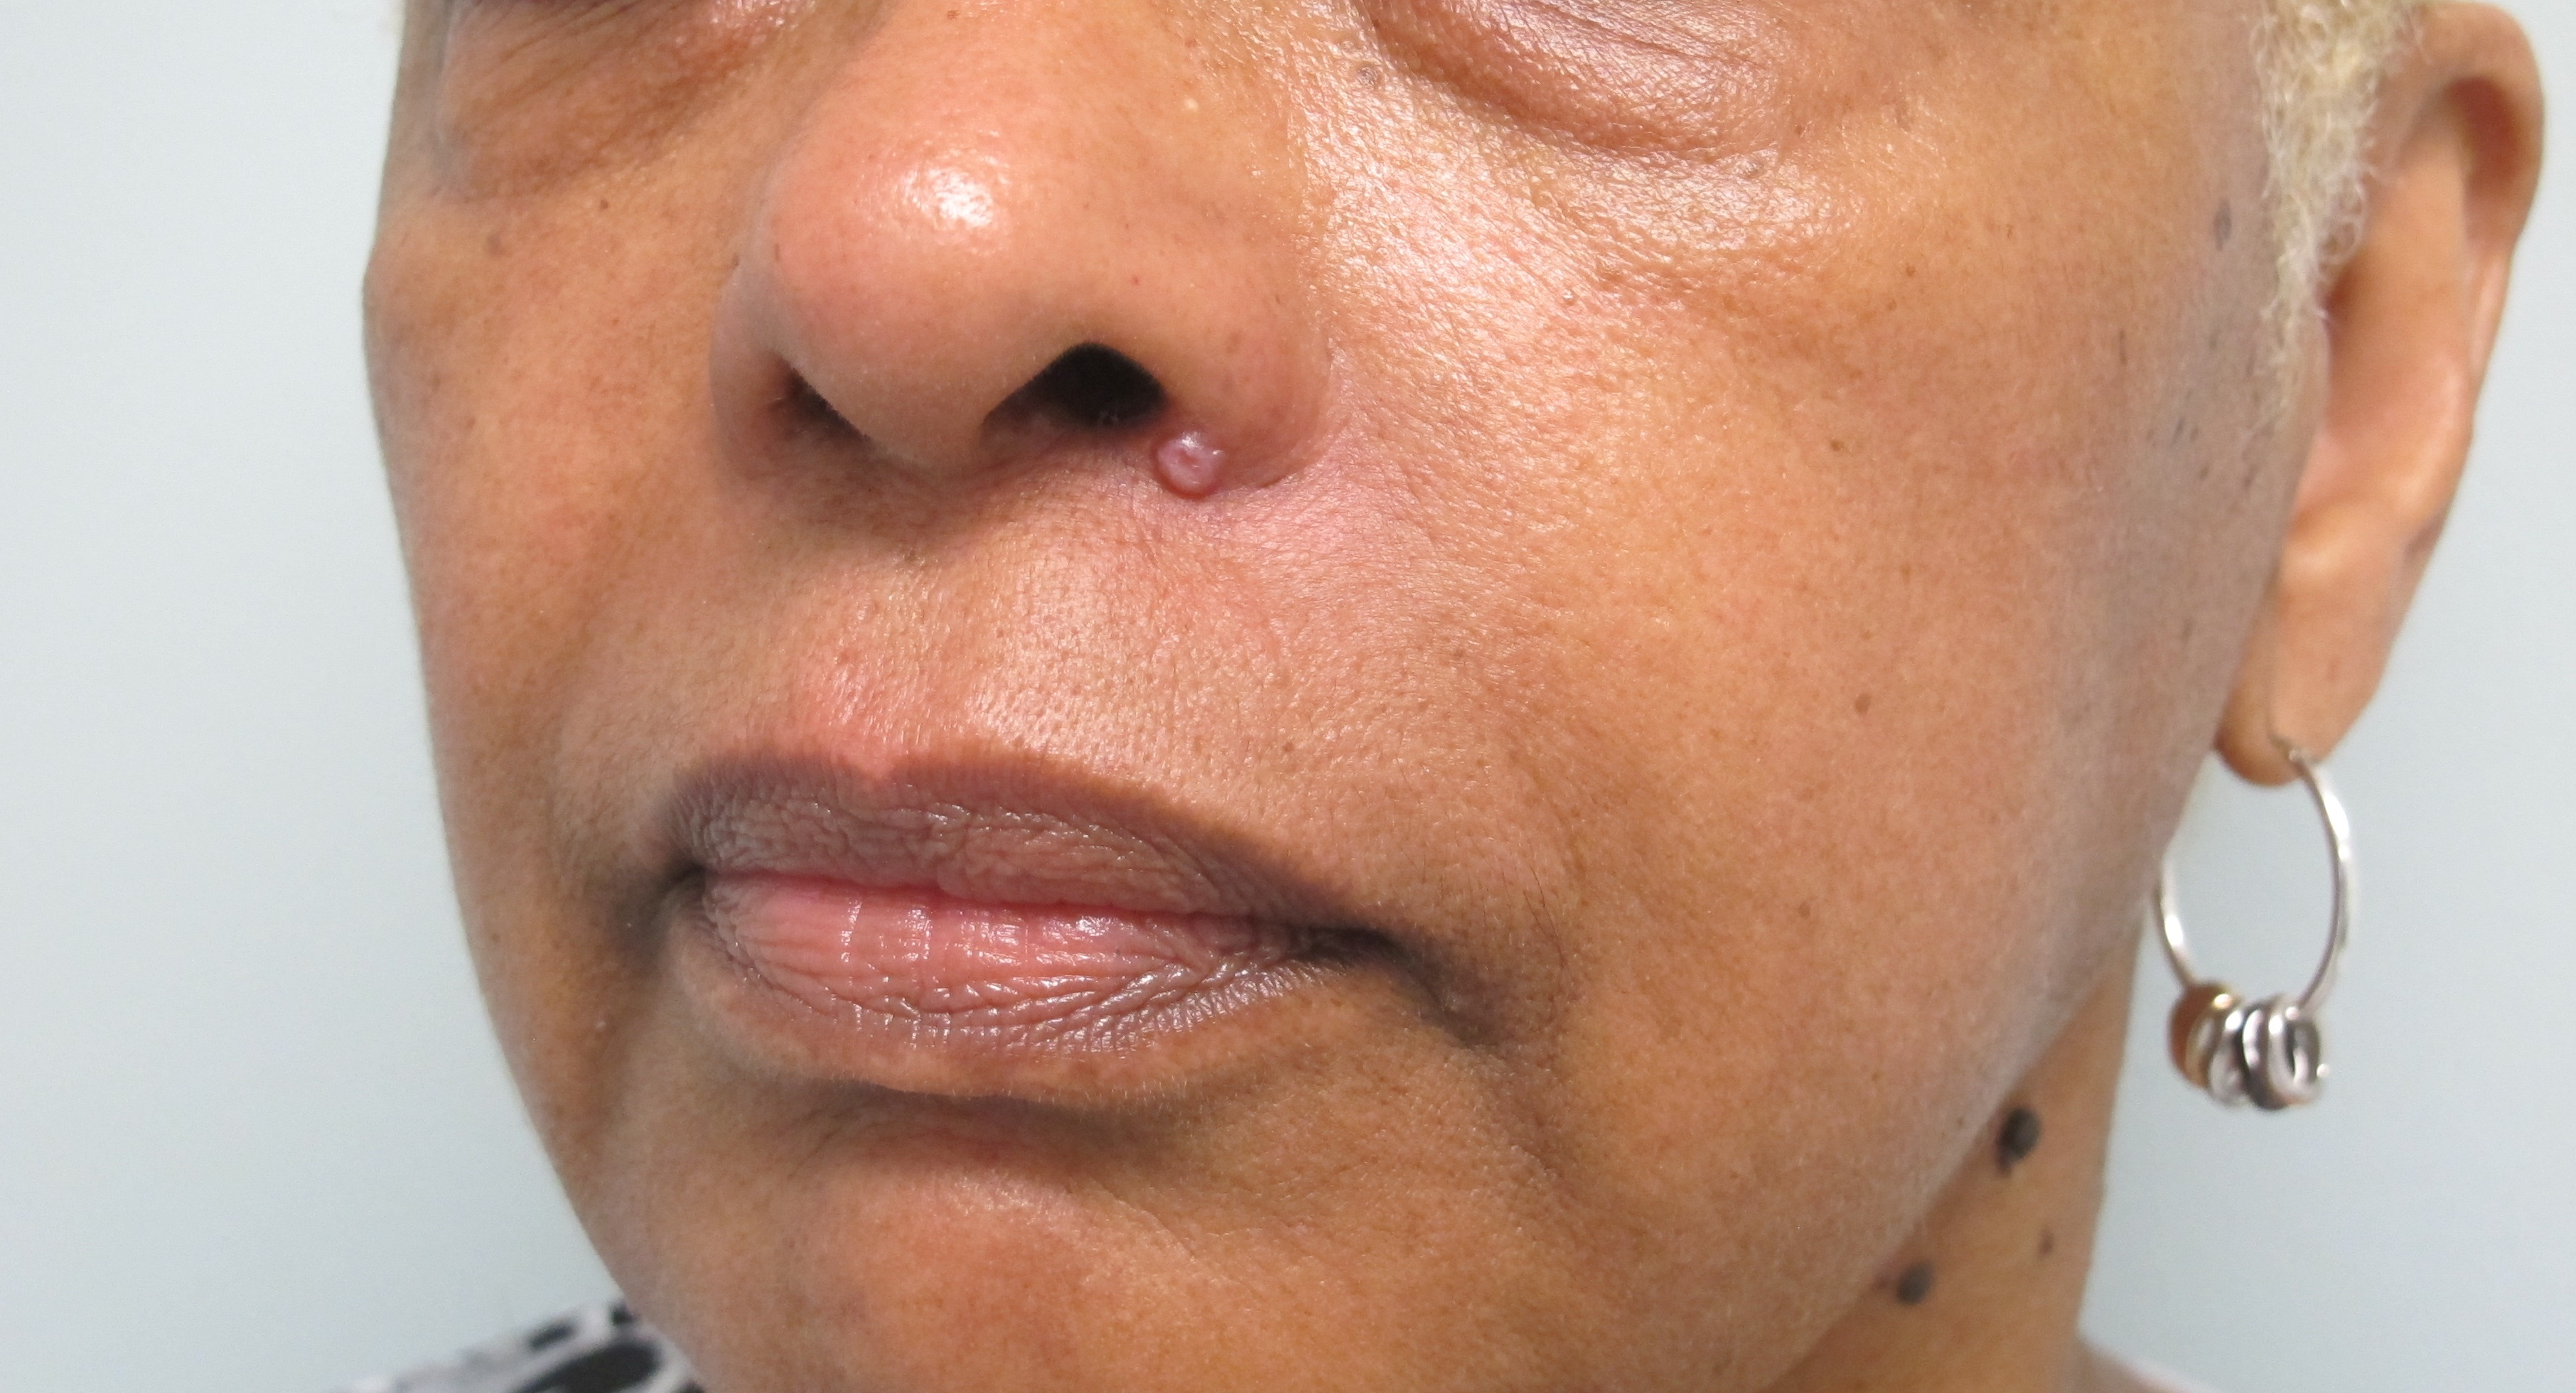 Basal cell carcinoma in a black person